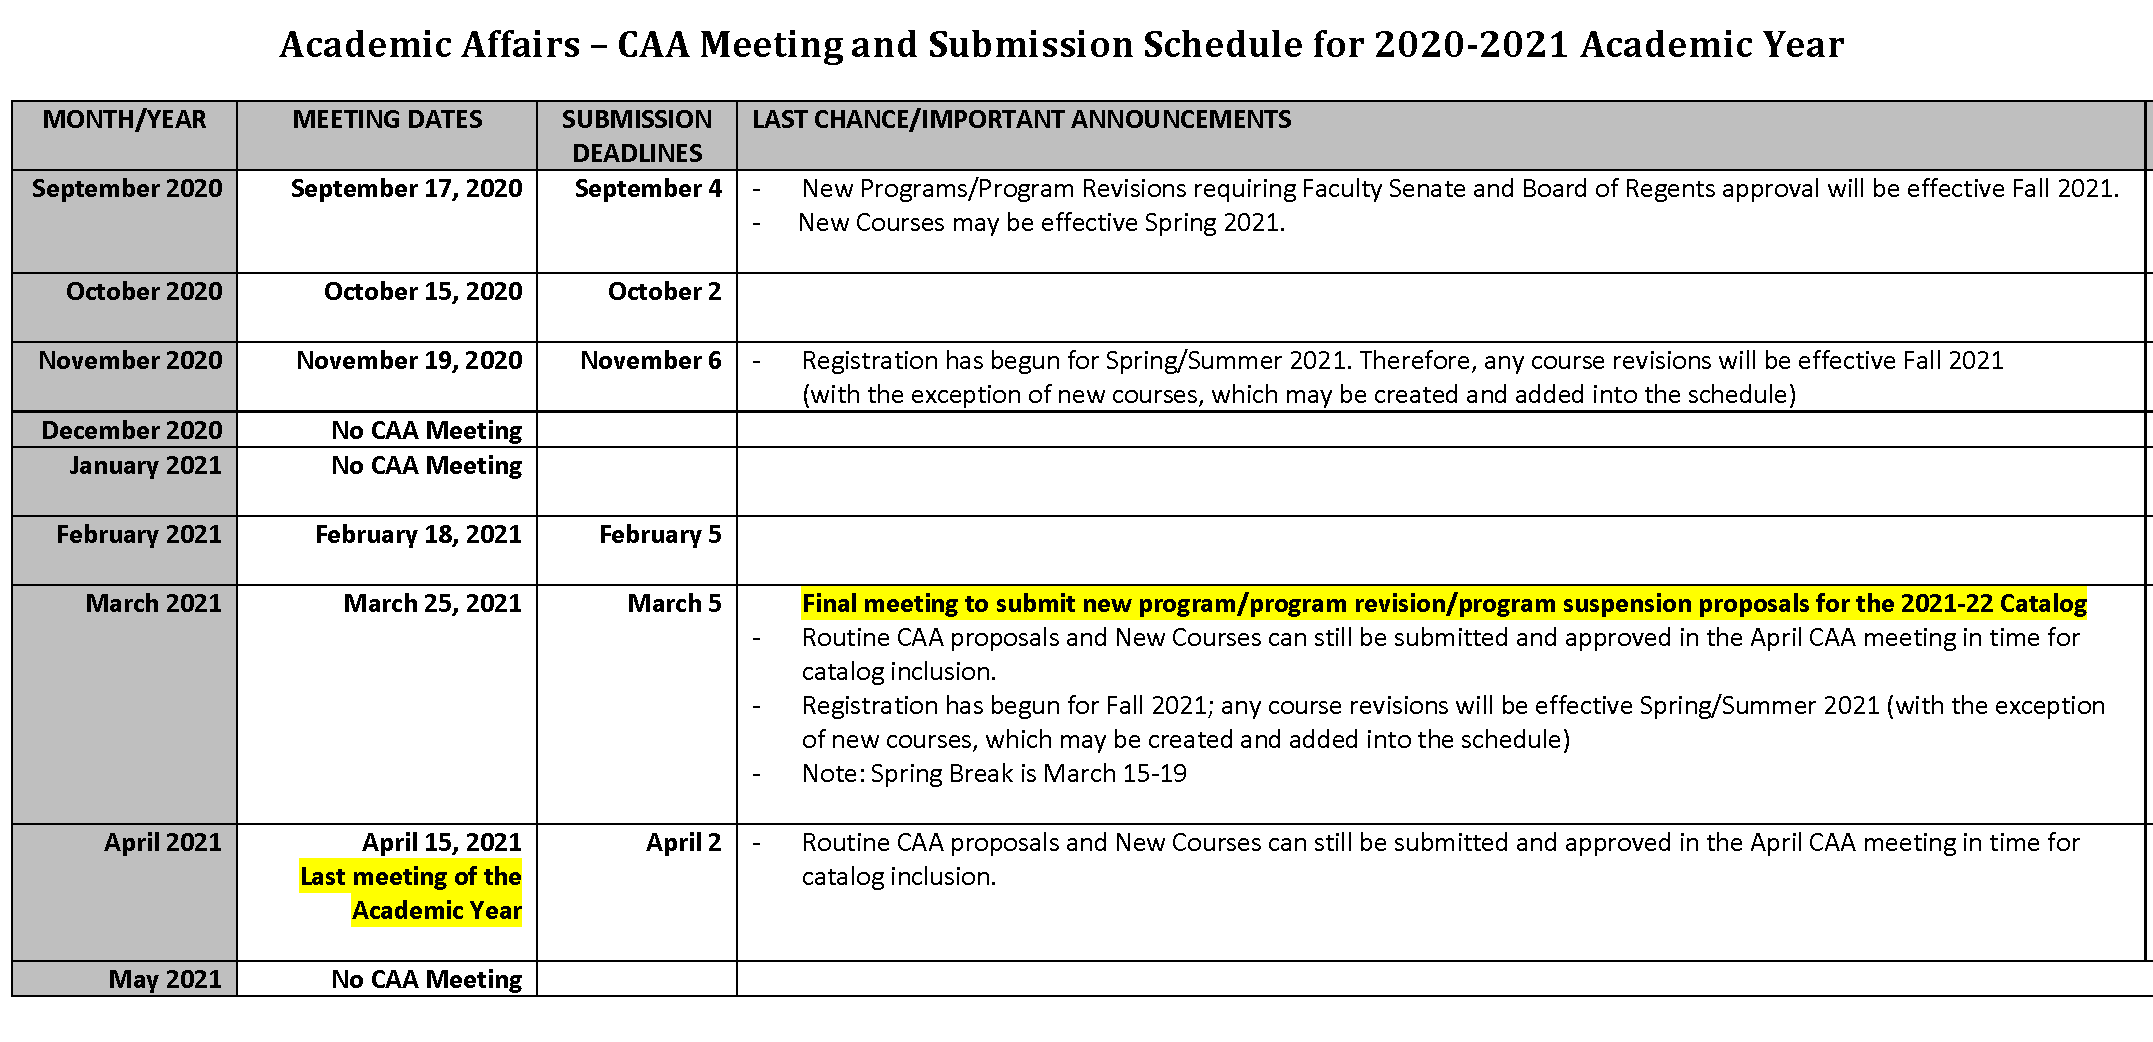 2020 2021 Academic Affairs Calendar | Council On Academic Affairs